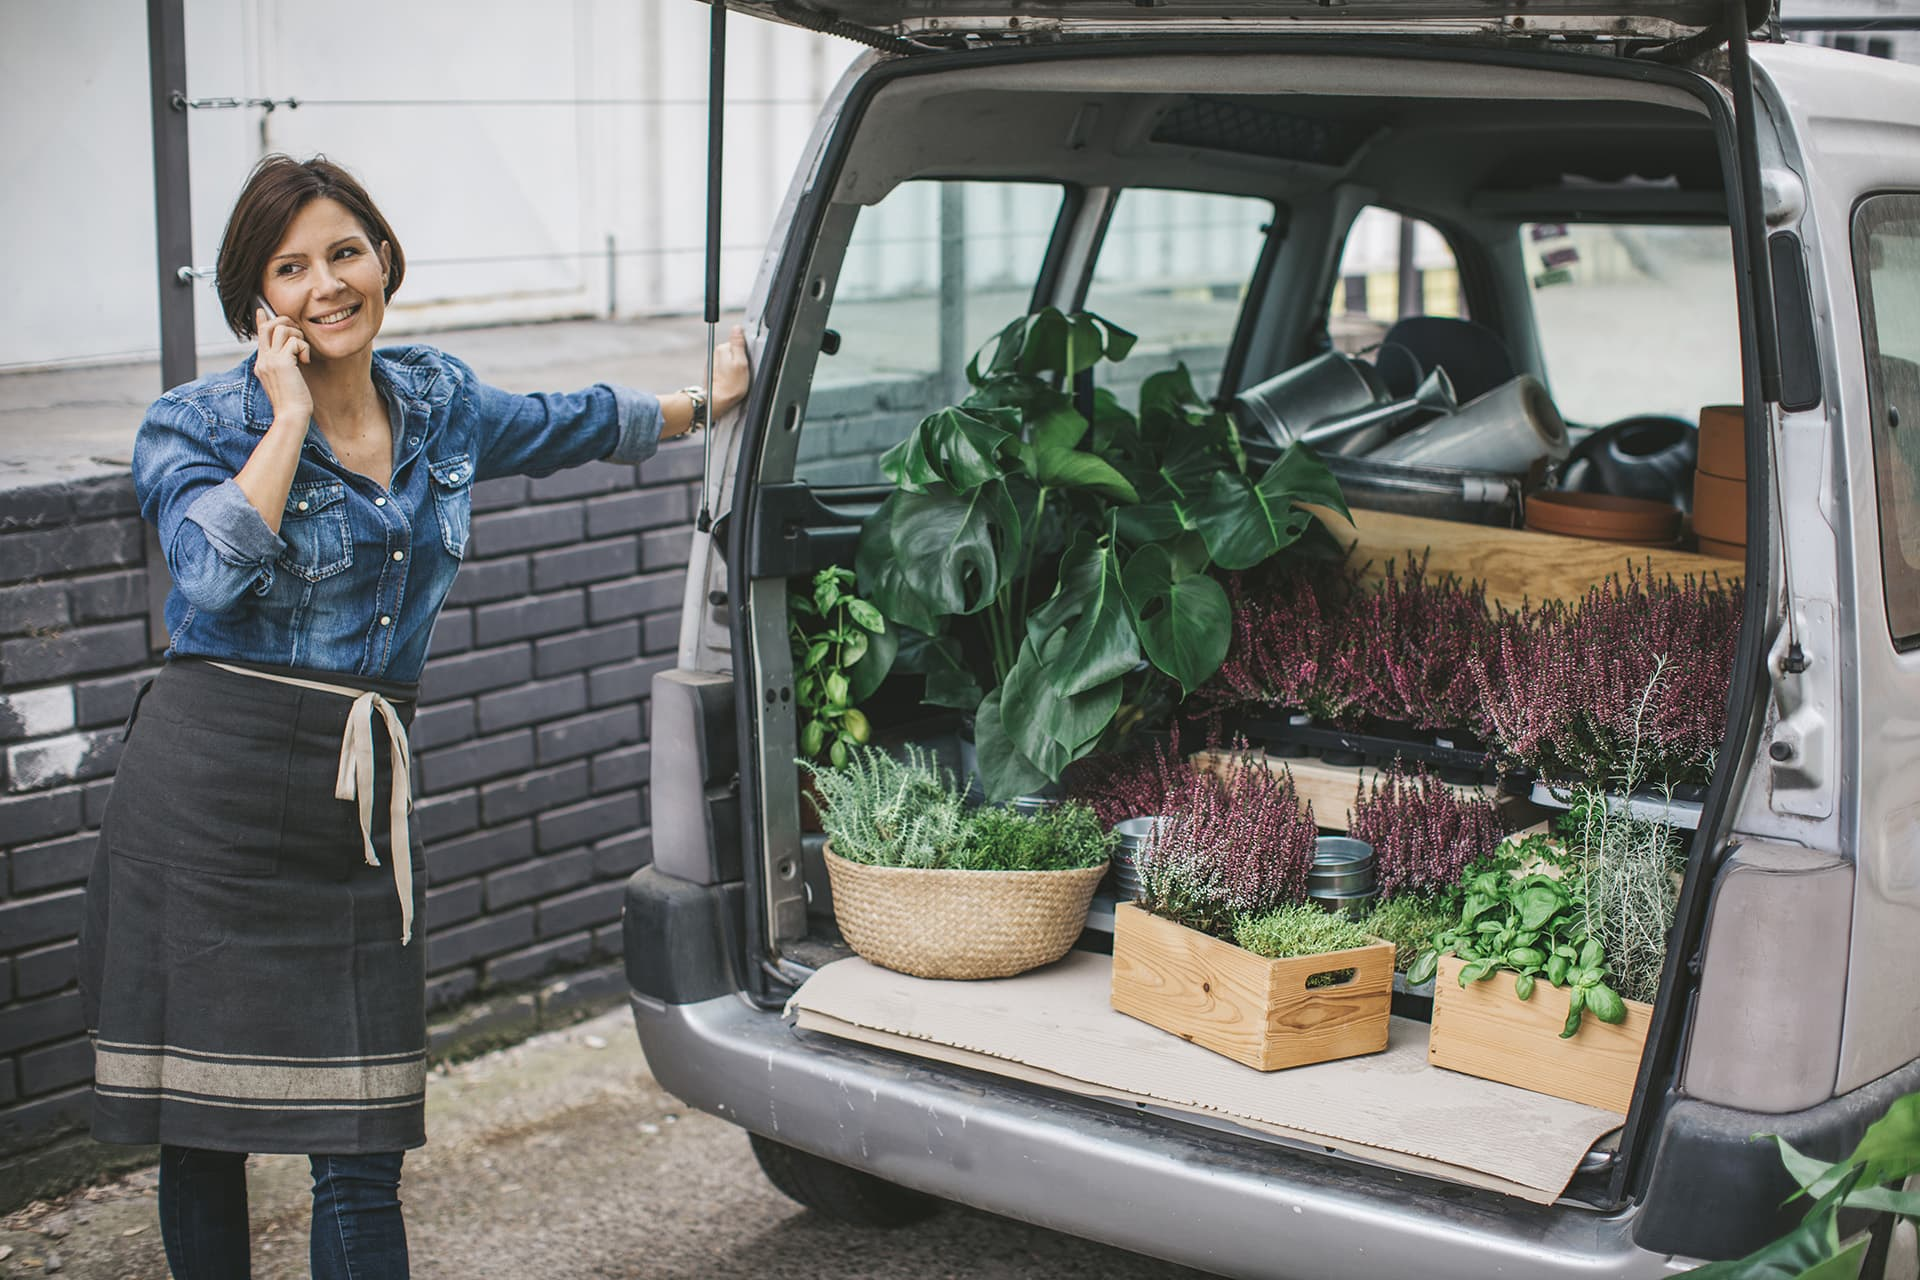 A woman on the phone with plants in the trunk of her car covered by individually rated auto insurance